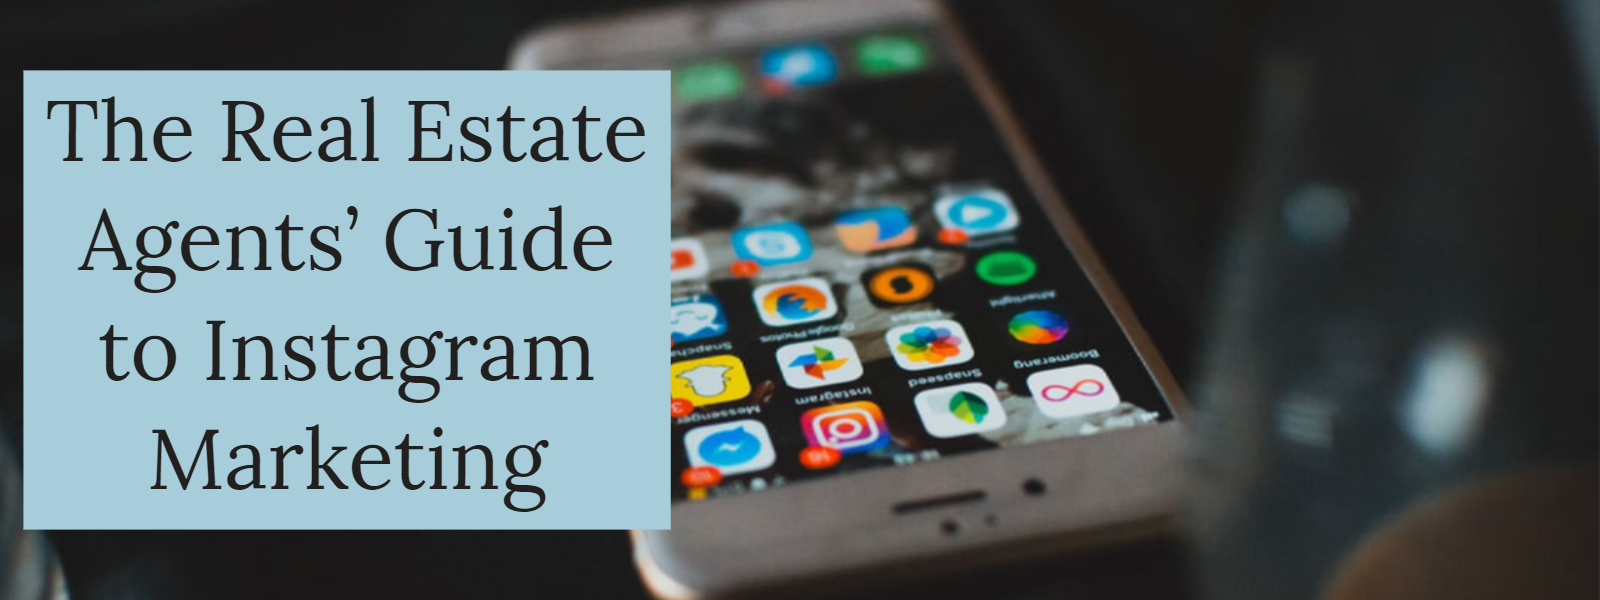 The Real Estate Agents' Guide to Instagram Marketing